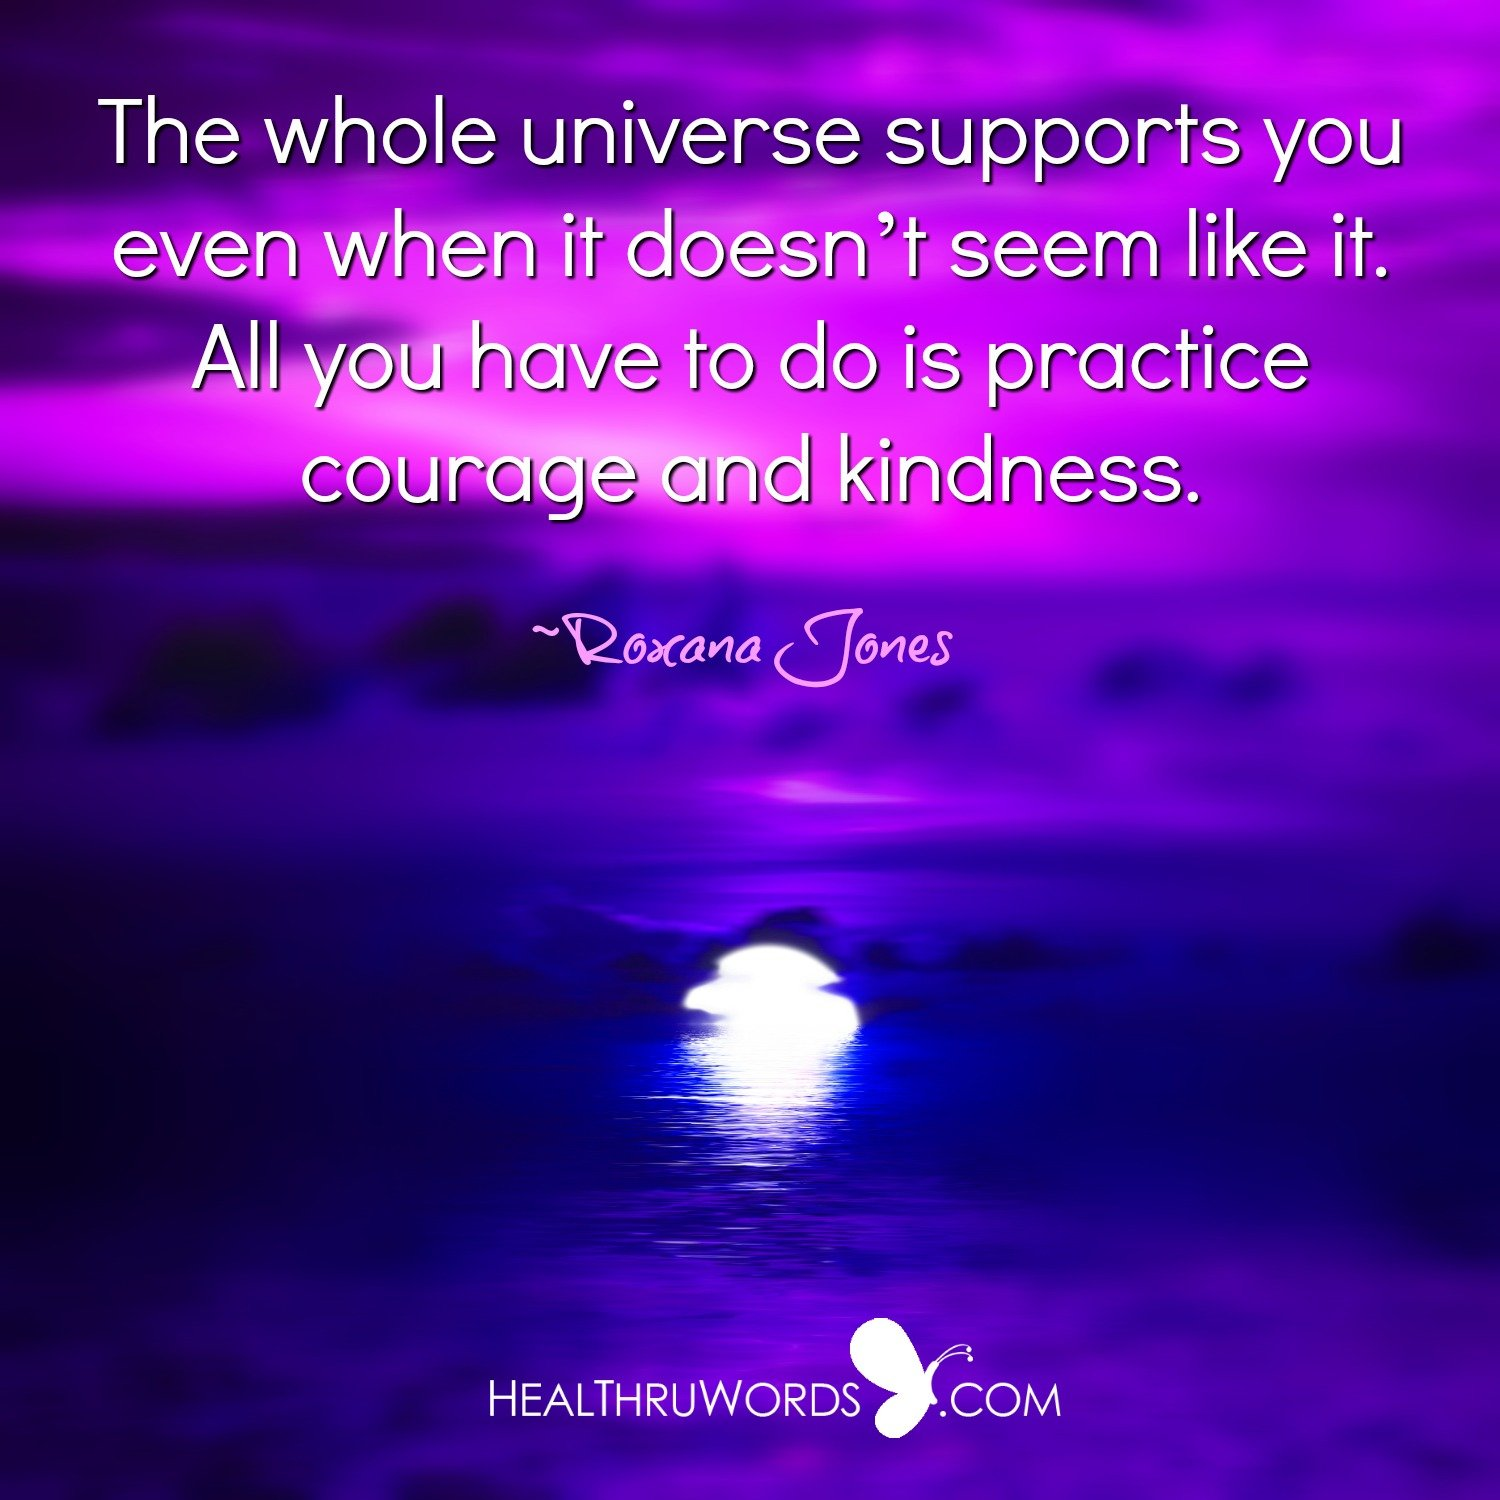 Inspirational Image: Universal Support